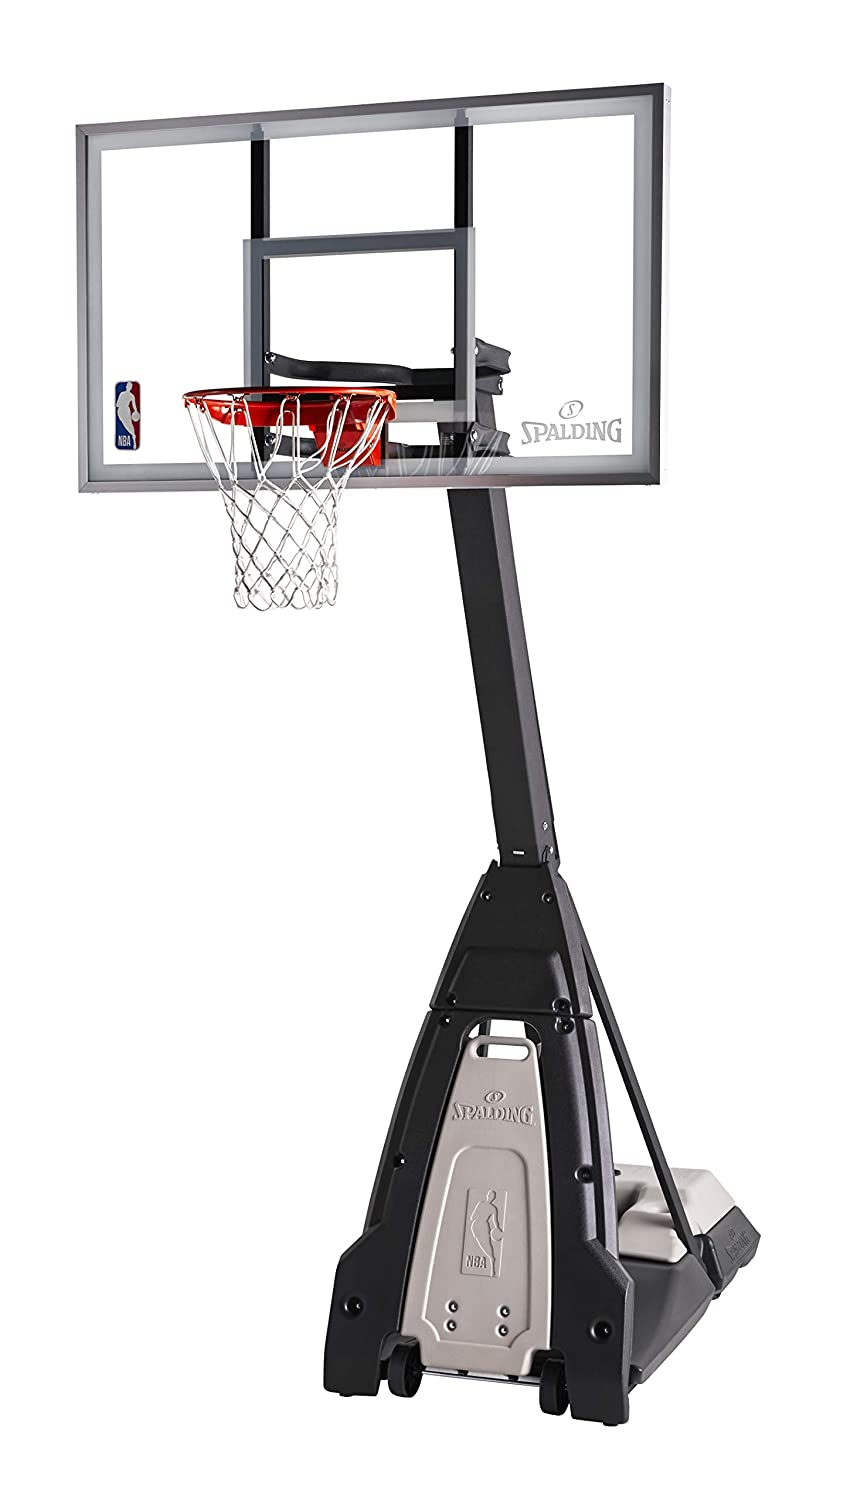 The Beast Portable Basketball Hoop